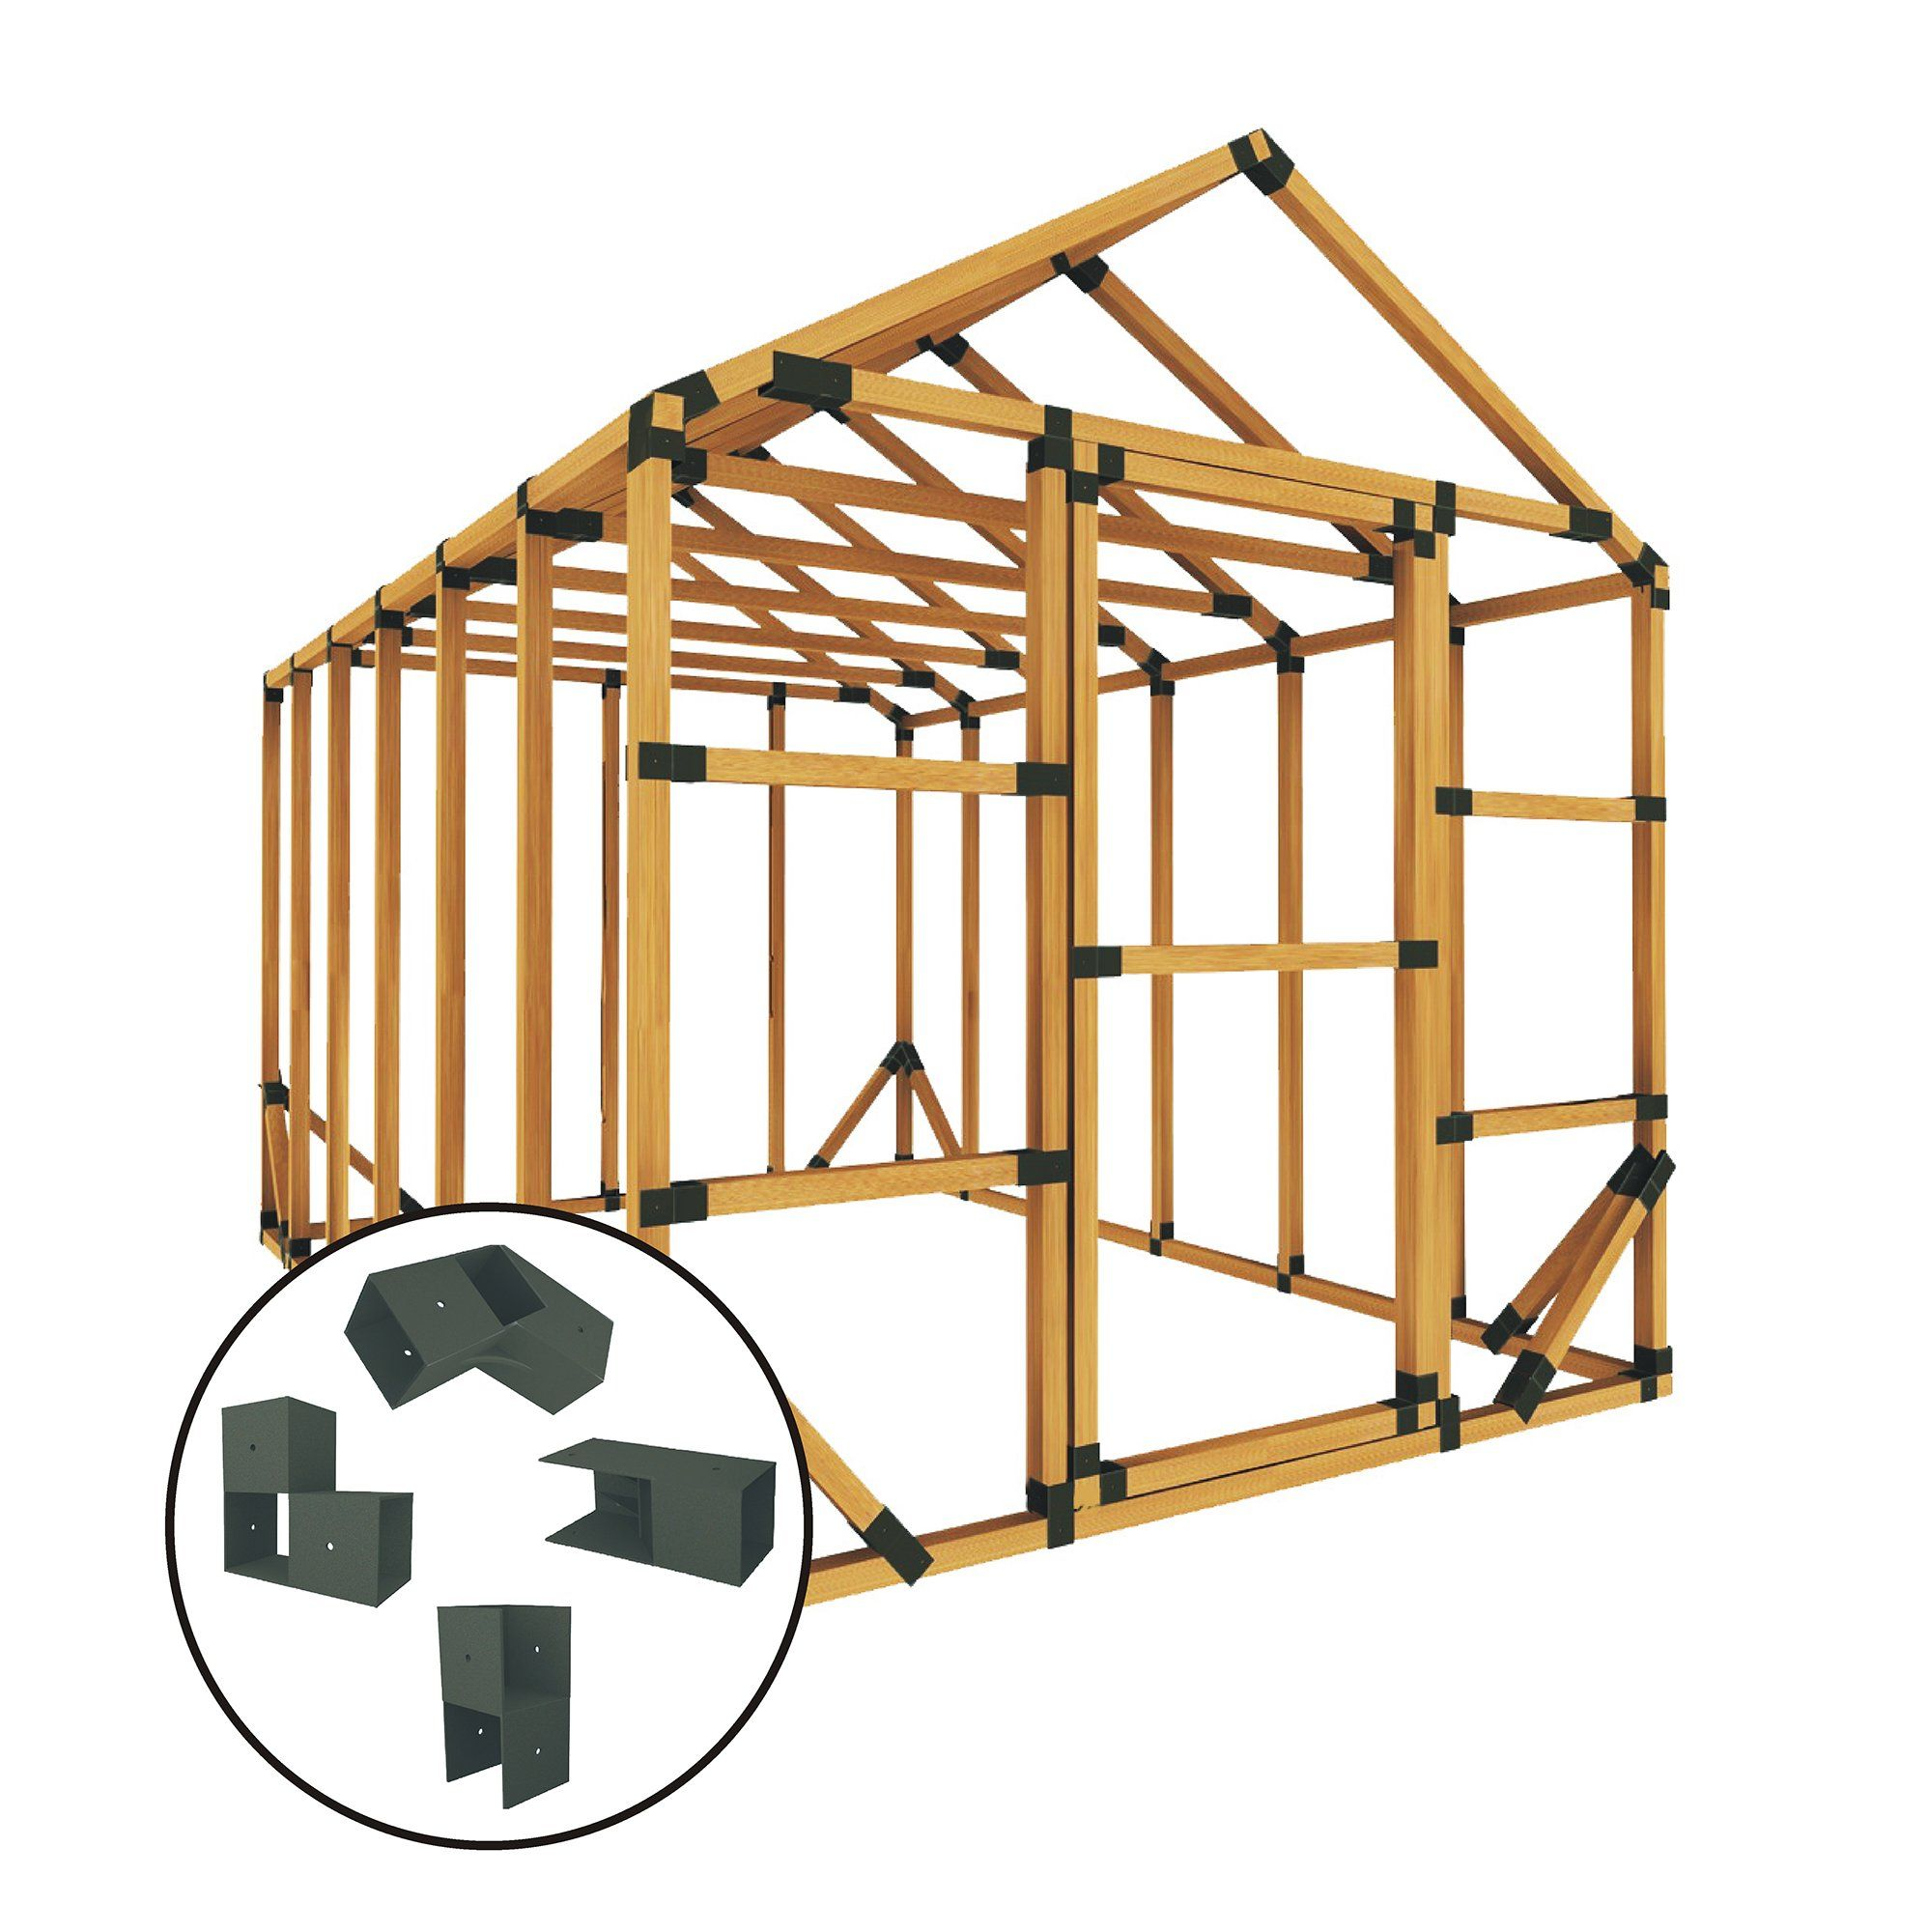 E Z Frames 10 Ft W X 20 Ft D Frame Bracket Reviews Wayfair Greenhouse Kit Storage Shed Kits Shed Kits